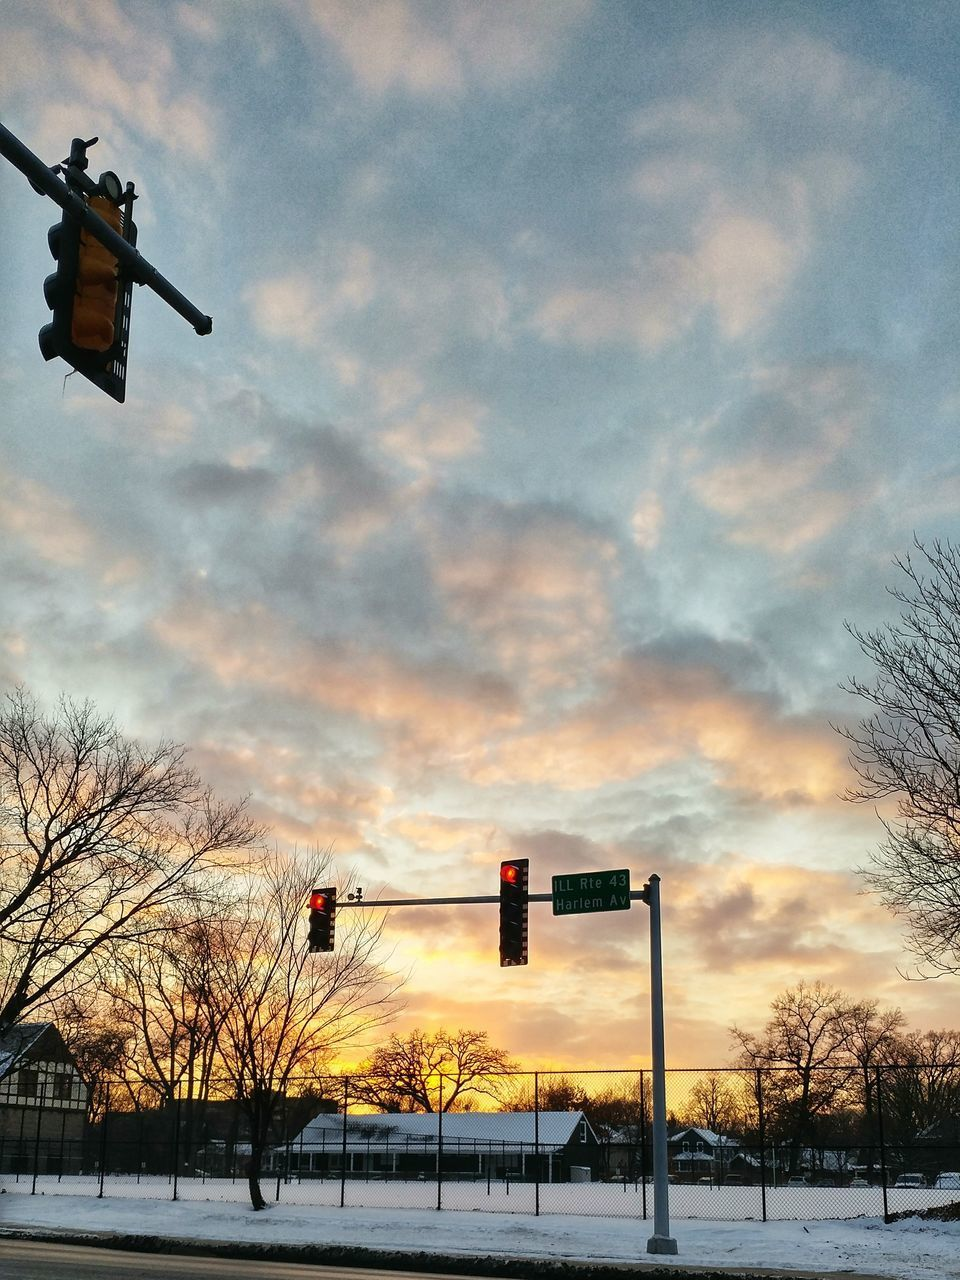 sky, bare tree, cloud - sky, traffic signal, sunset, traffic light, no people, red light, stoplight, road sign, cold temperature, signal, winter, outdoors, low angle view, tree, nature, day